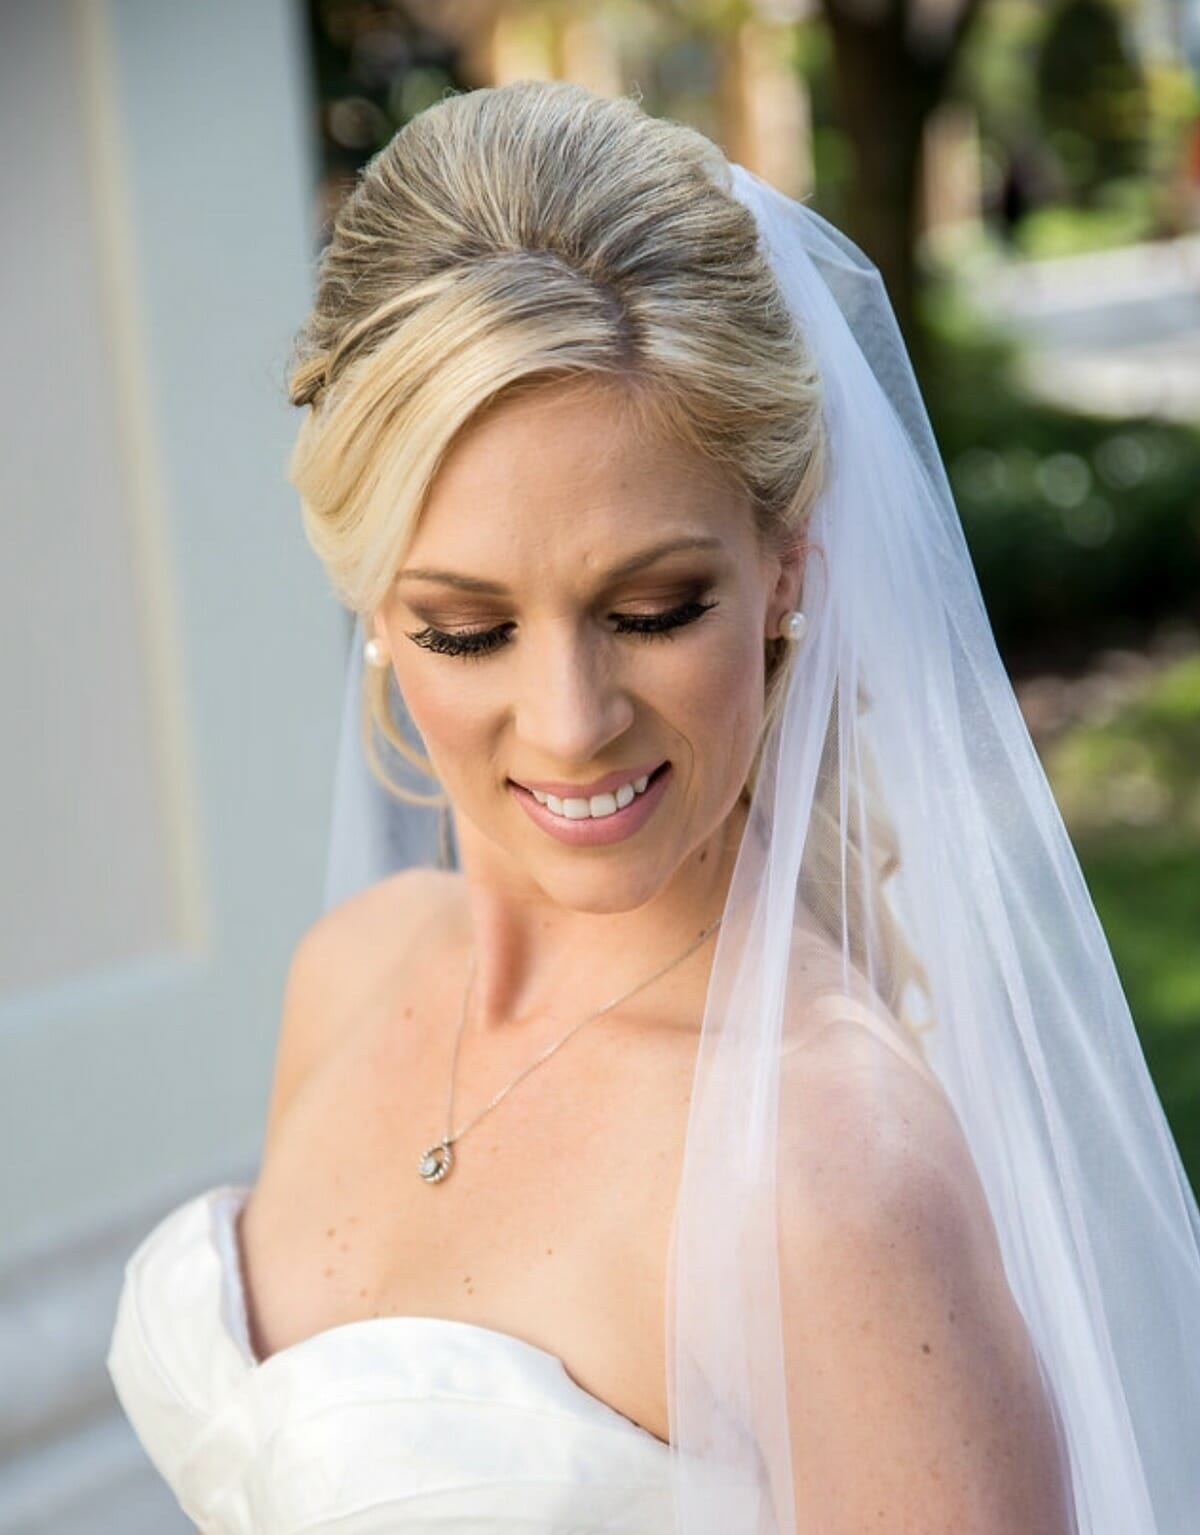 Be sure to bring your wedding day accessories to your beauty trial.